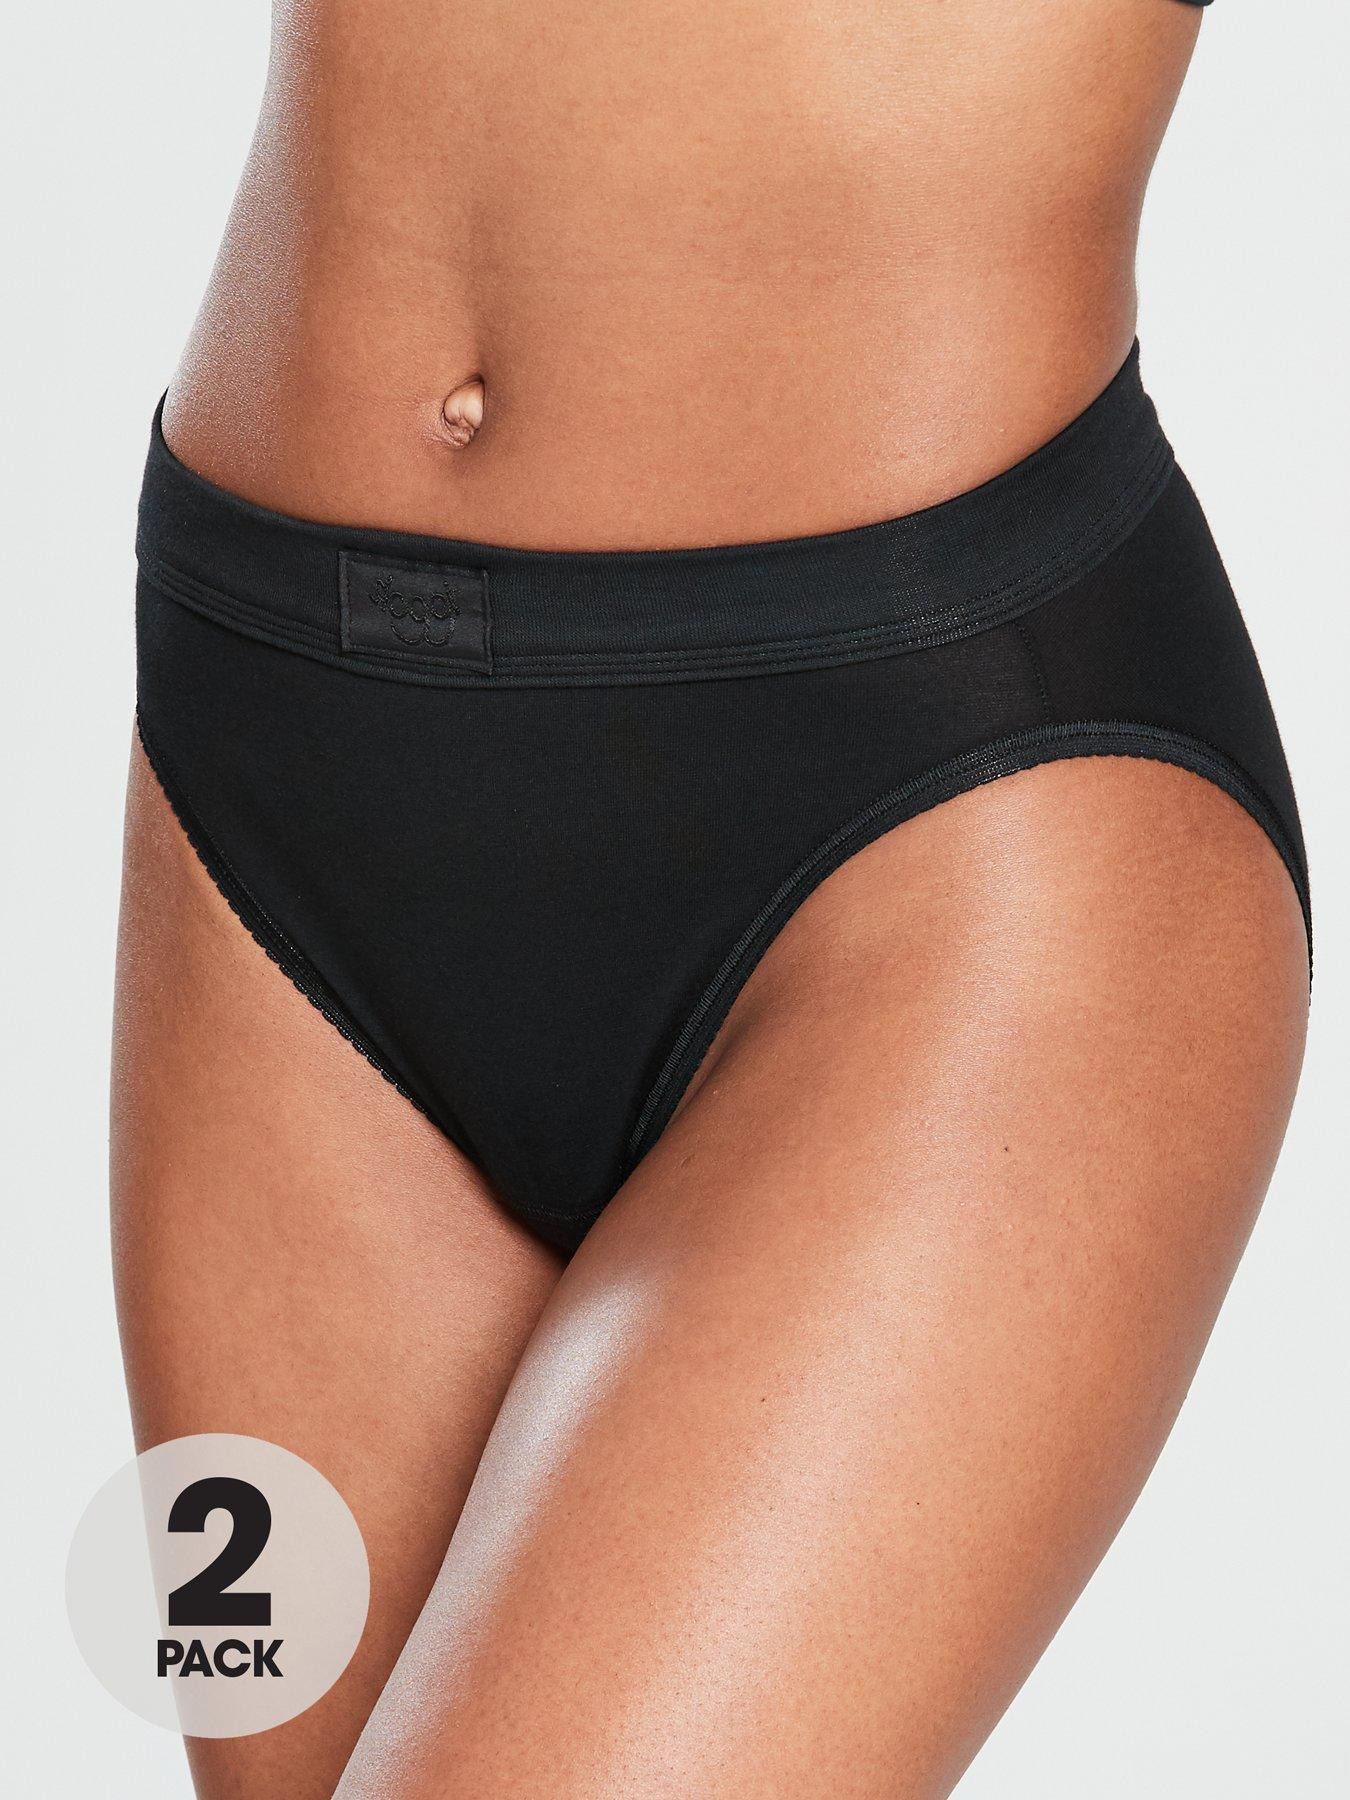 STAR WARS KNICKERS OFFICIAL FRONT AND BACK DESIGN WOMEN LADIES SIZES UK 18